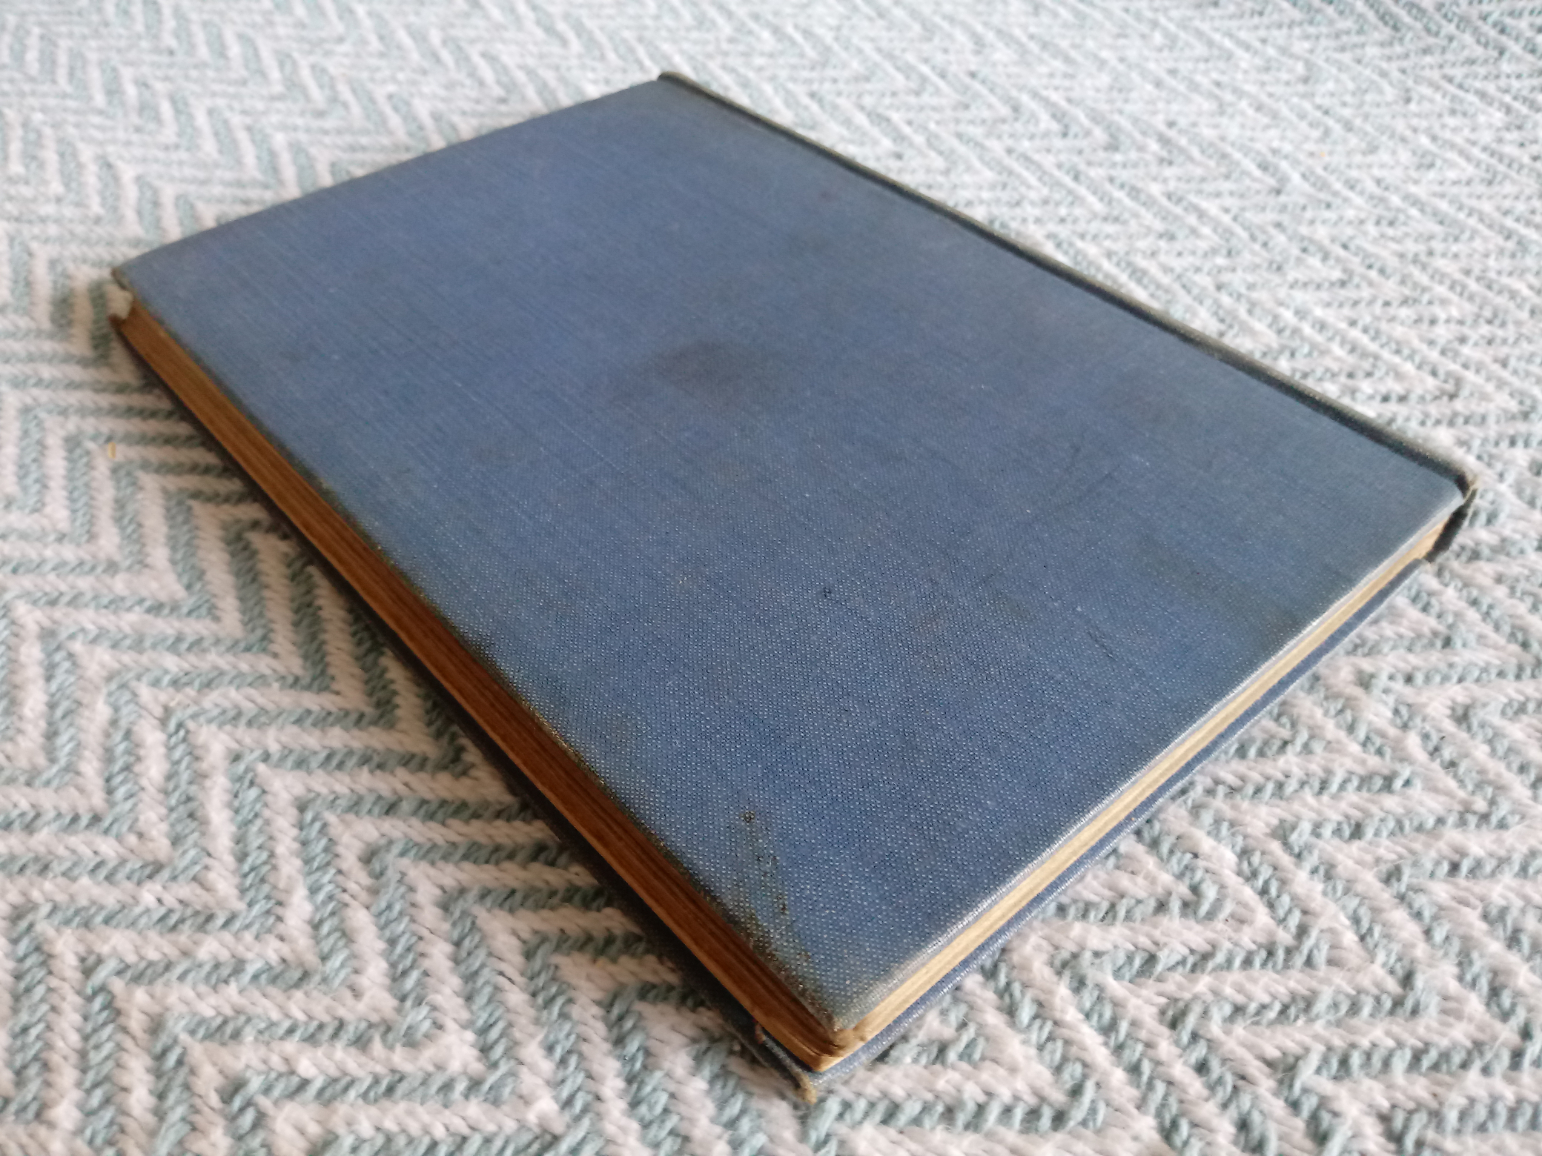 Modern Geometry hardback book by C.V Durell 145 pages Published 1938 by Macmillan And Co Ltd. No